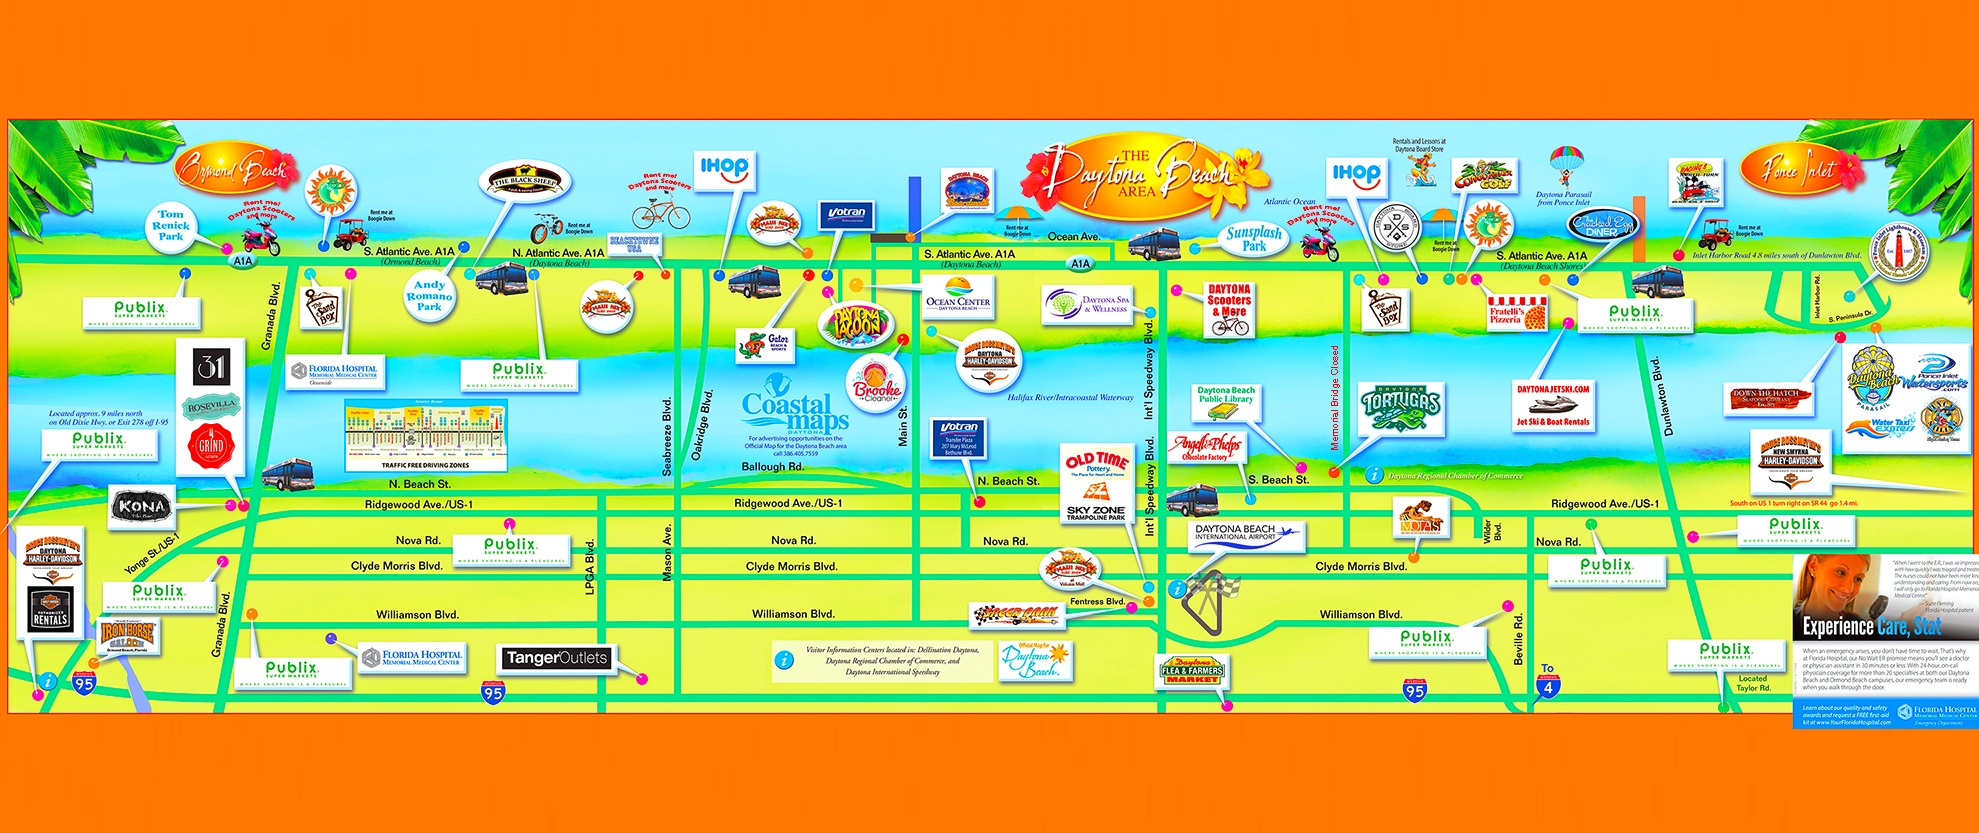 Daytona Beach tourist attractions map